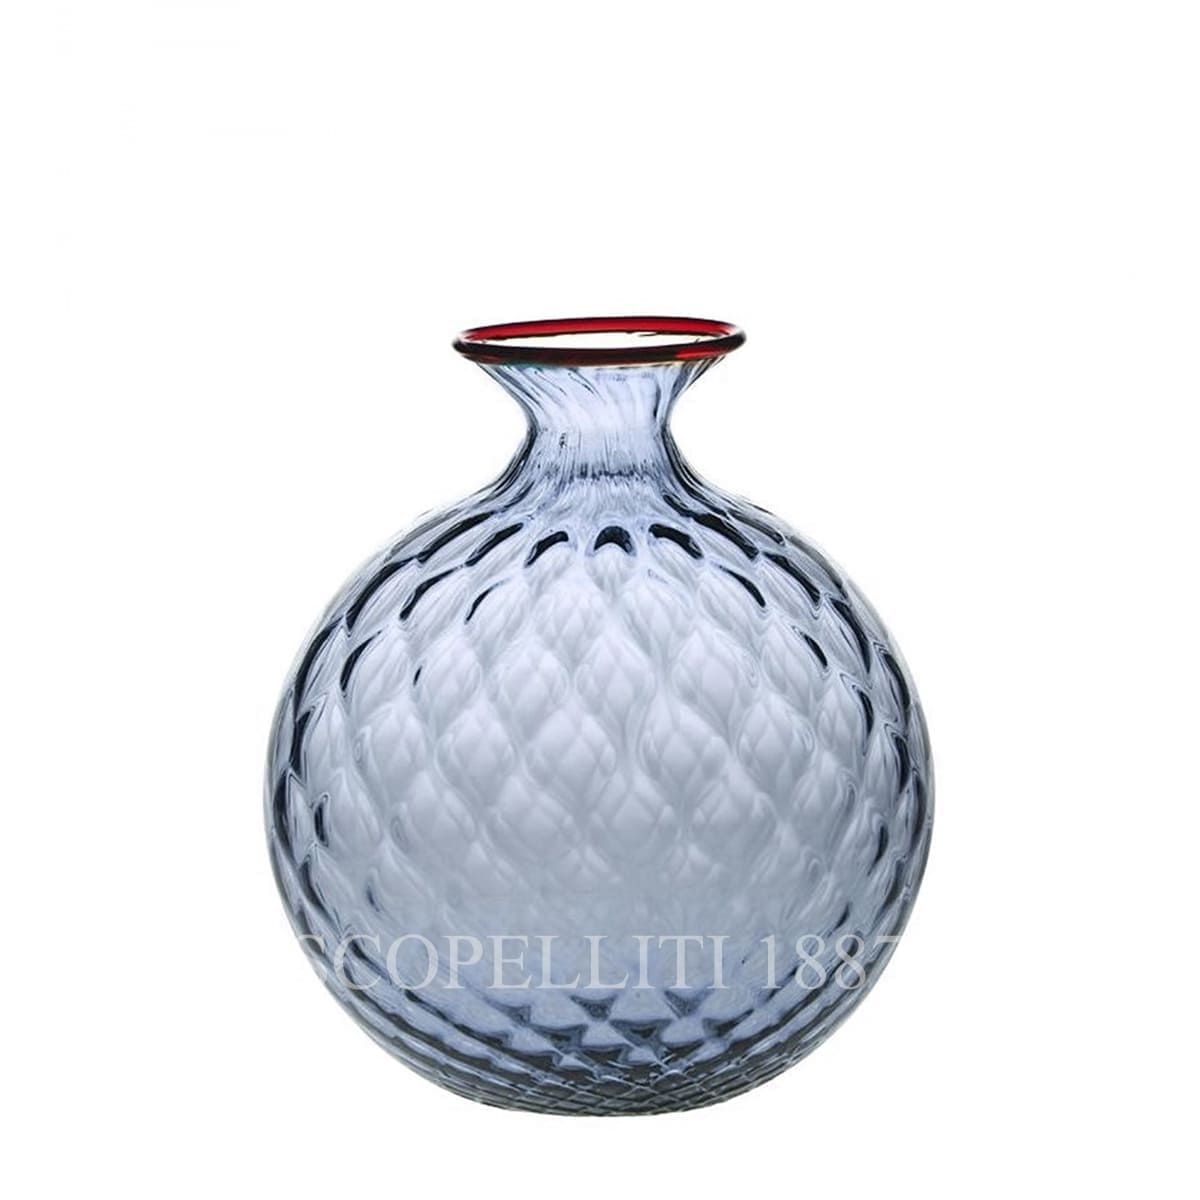 venini murano glass italian monofiore balloton vase limited edition grape